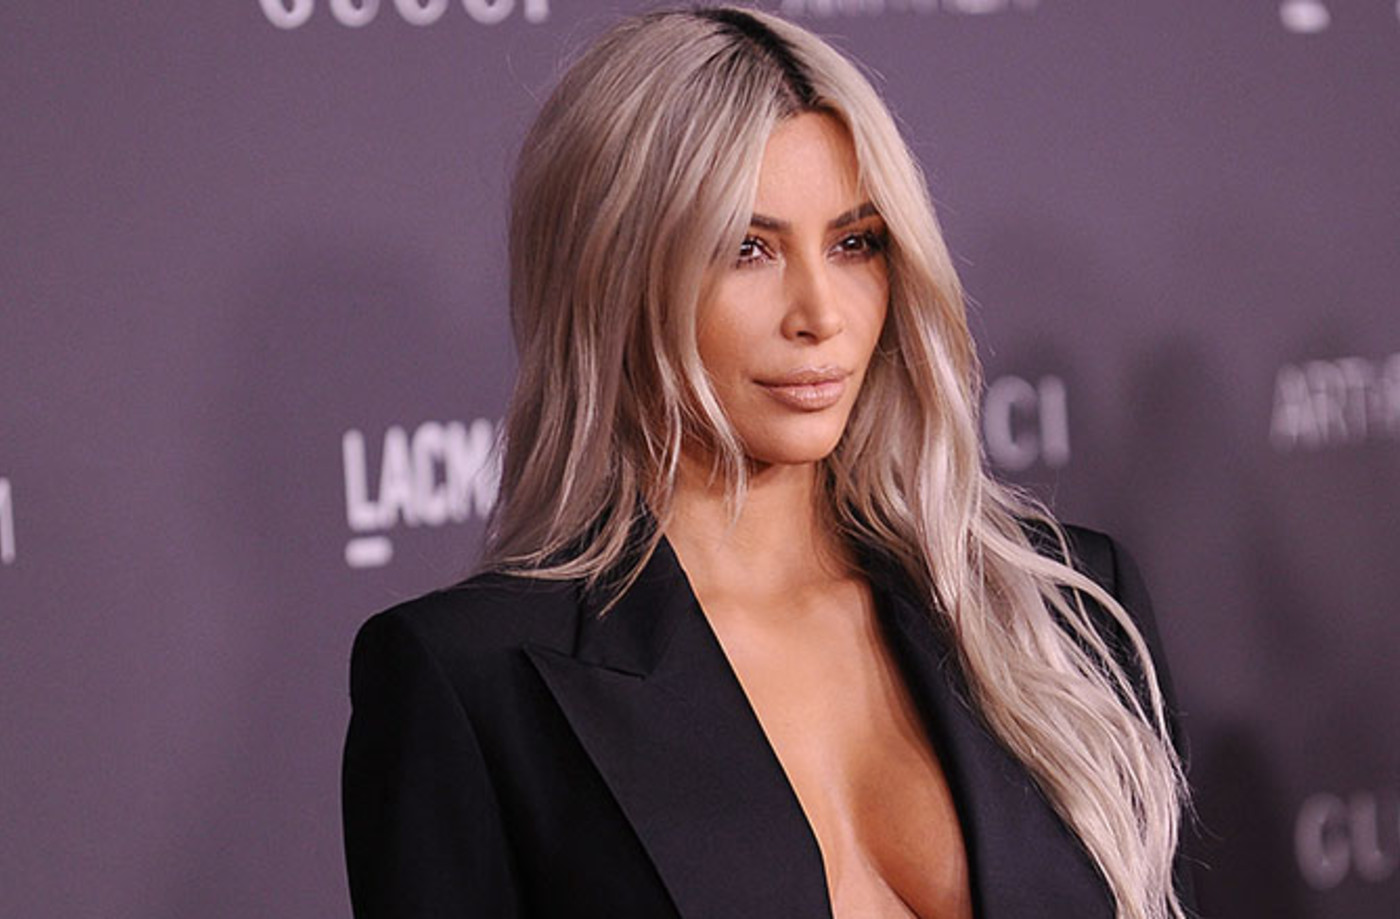 This is a photo of Kim Kardashian.